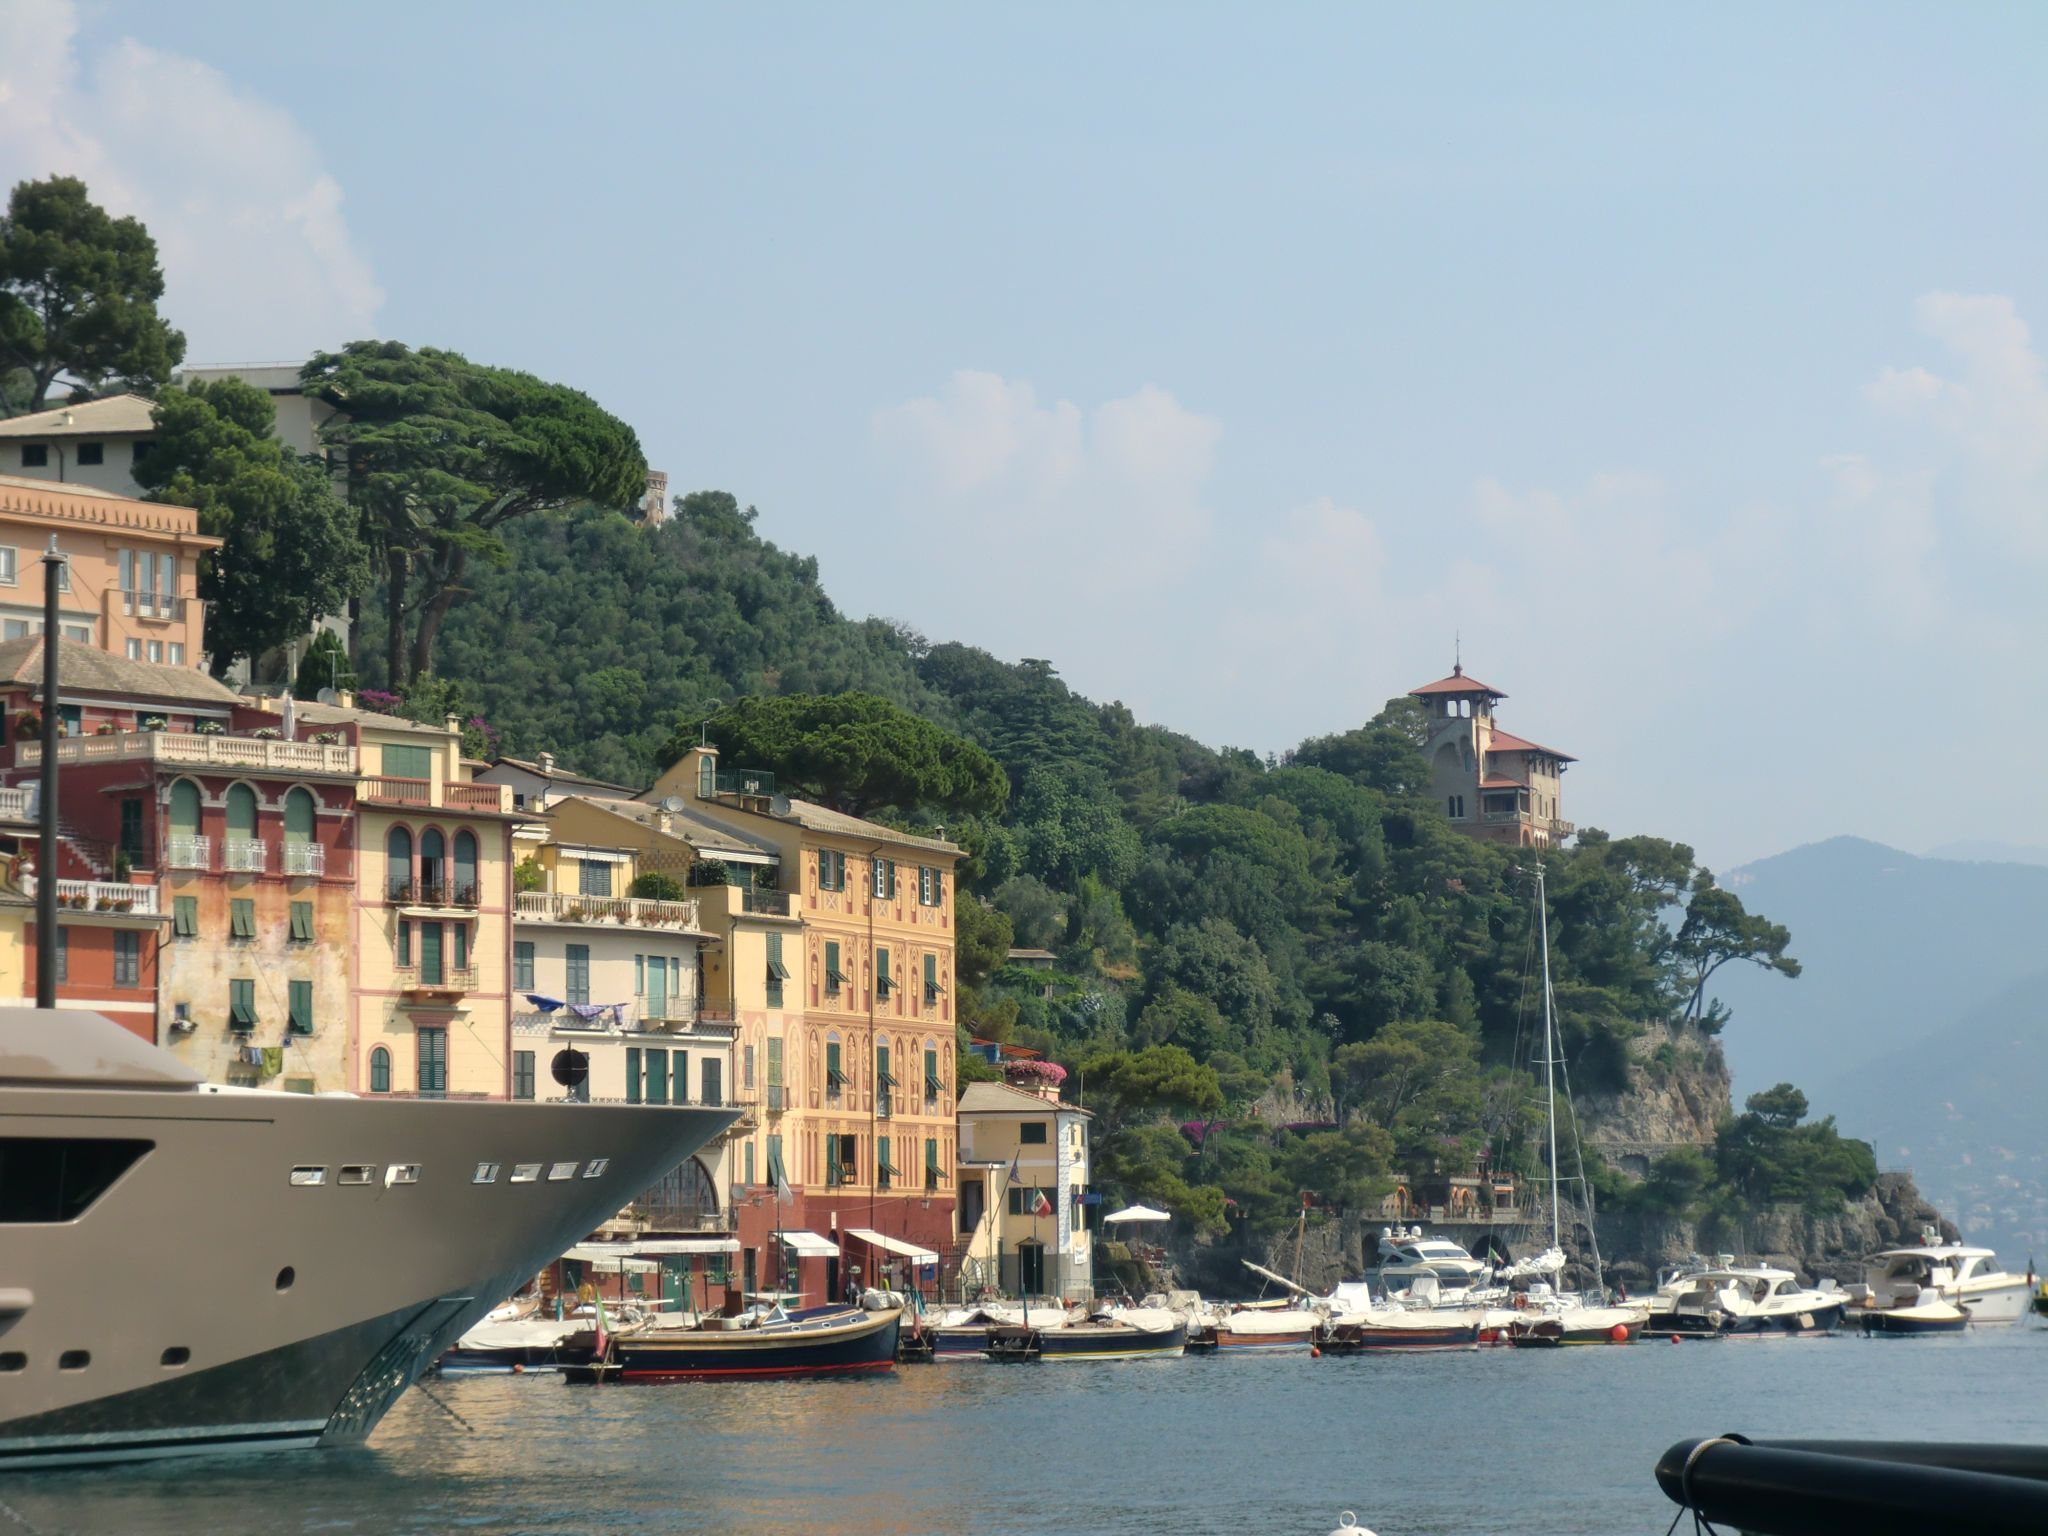 Portofino 13 - Portofino: a small pearl on the sea